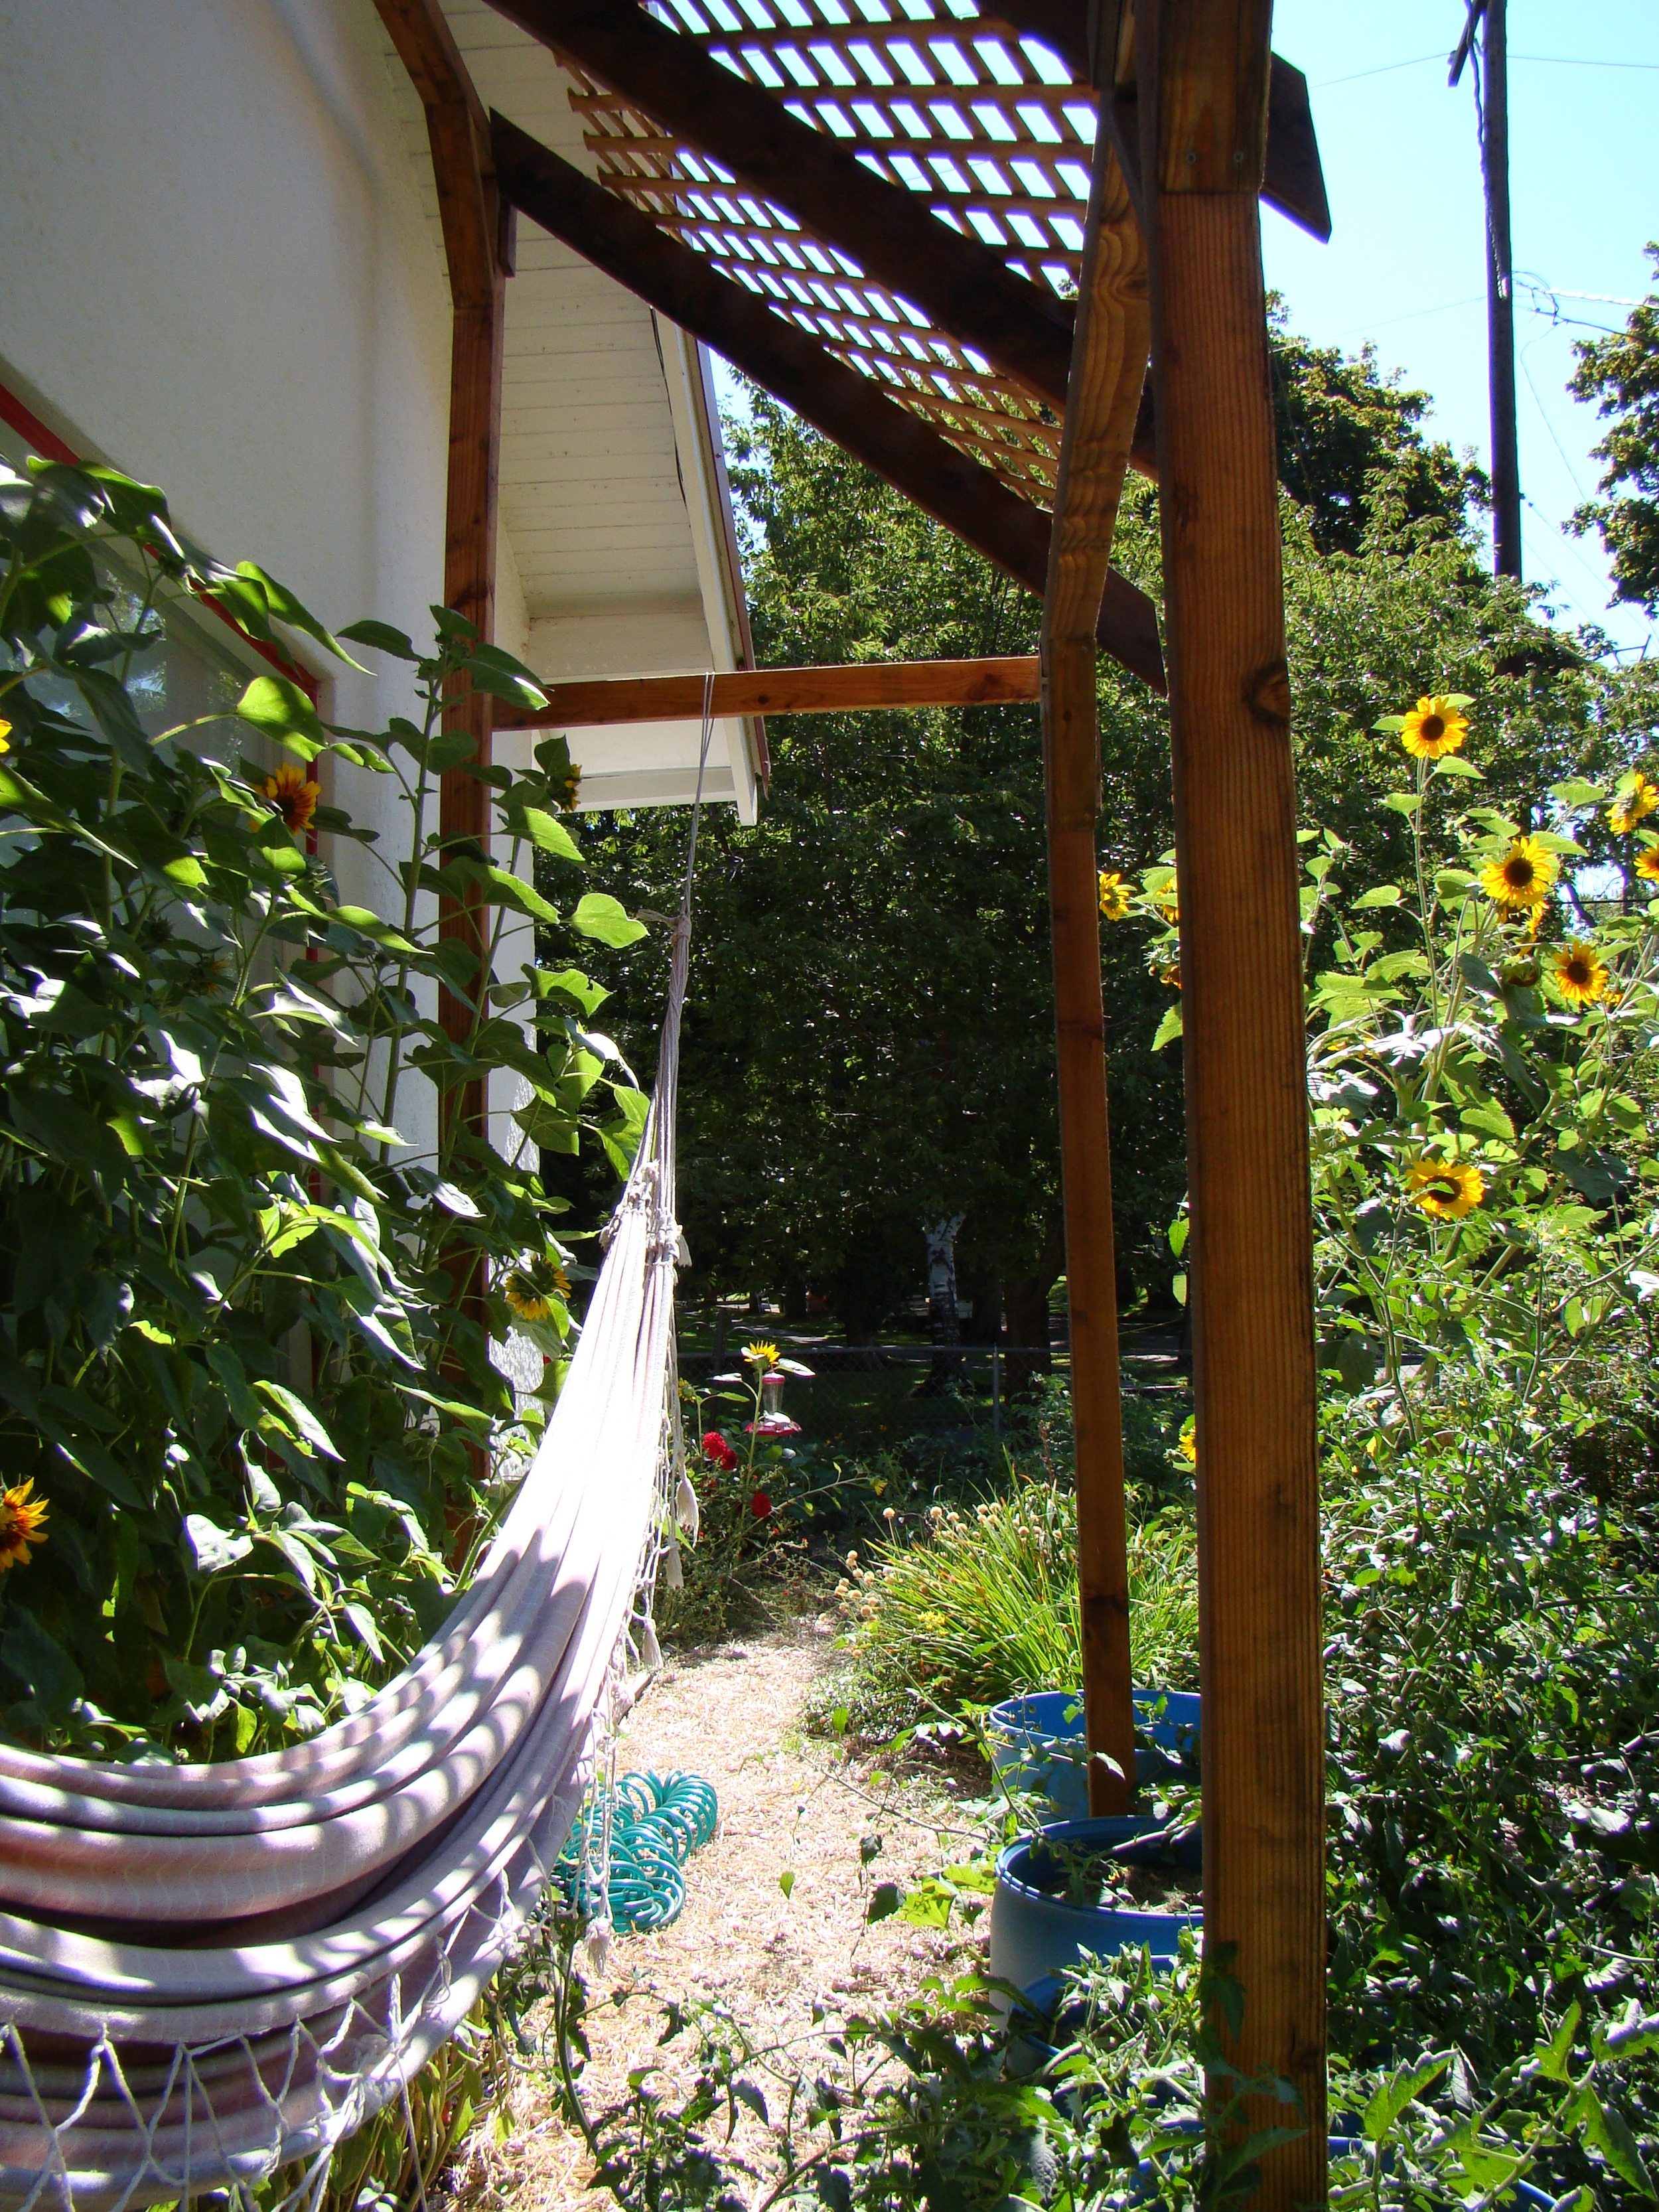 lounging in the hammock under the trellis between the sunflowers and tomatoes